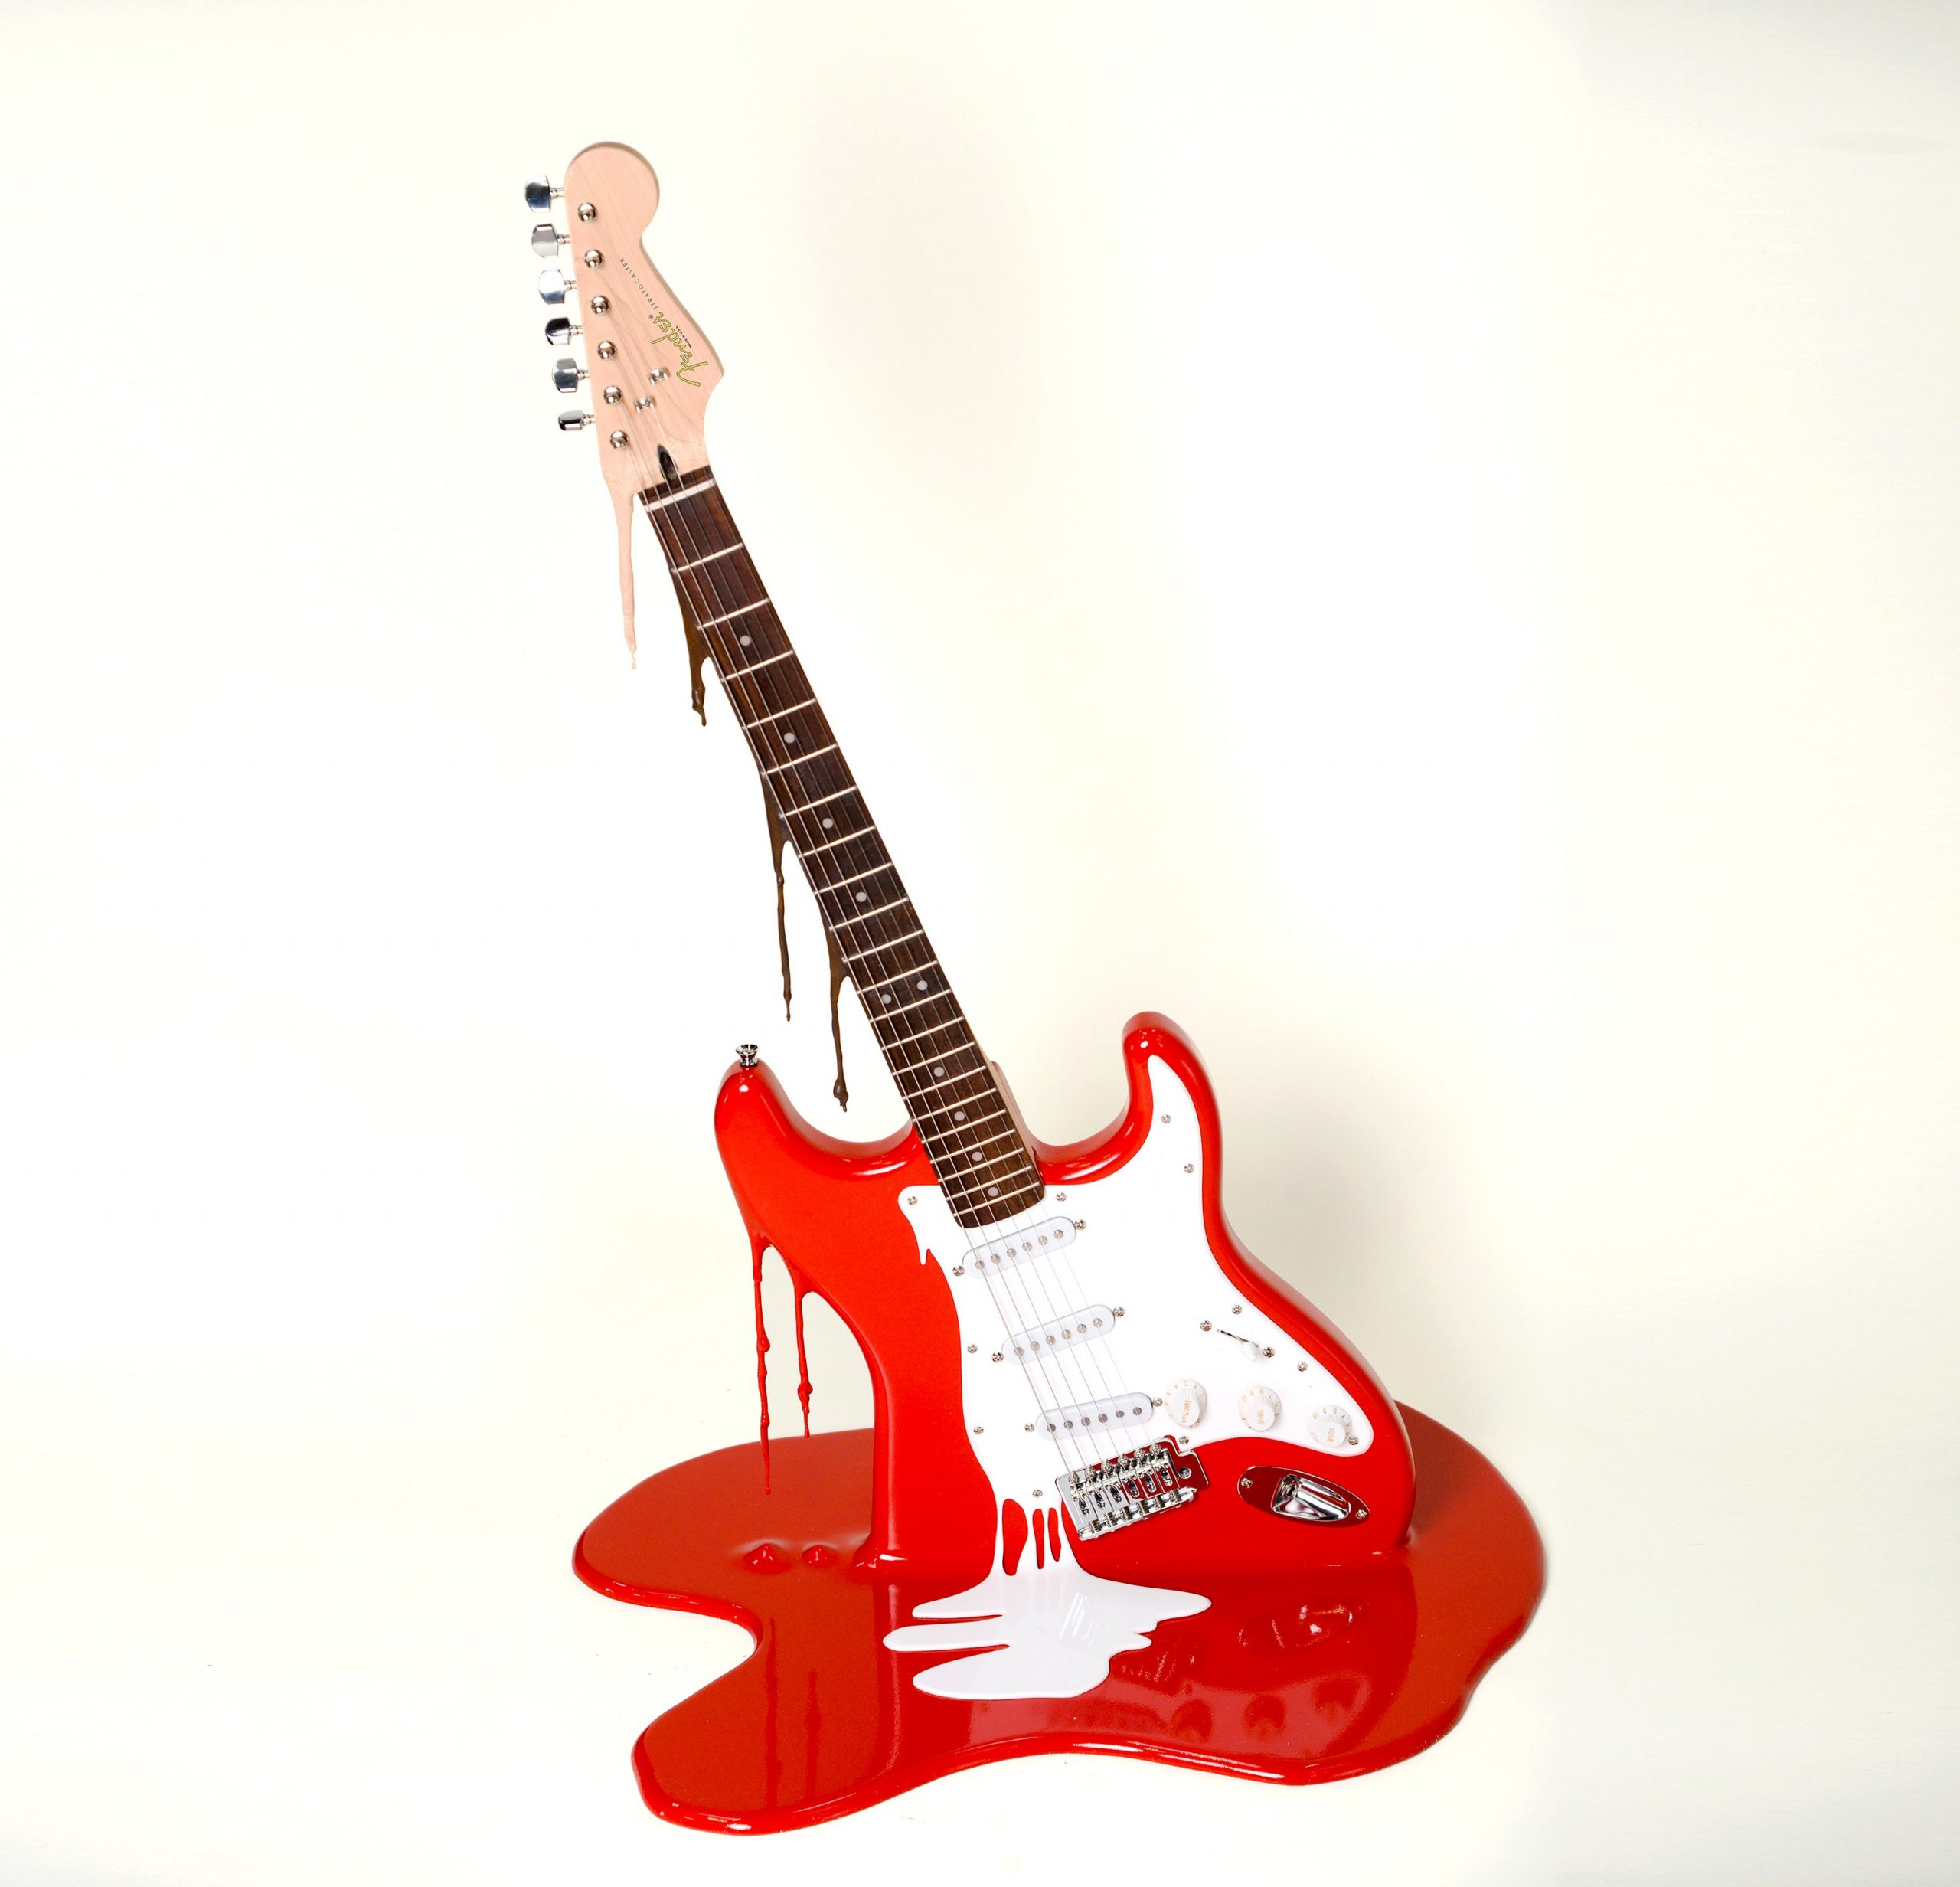 PJ050 Plastic Jesus 22The Art Of Noise 22 Red Fender Stratocaster guitars fully working with Acrylic and Resin 32x24x20 2019 SALE 7500 RENTAL 425 01 V1 org scaled - گیتار یا پیانو